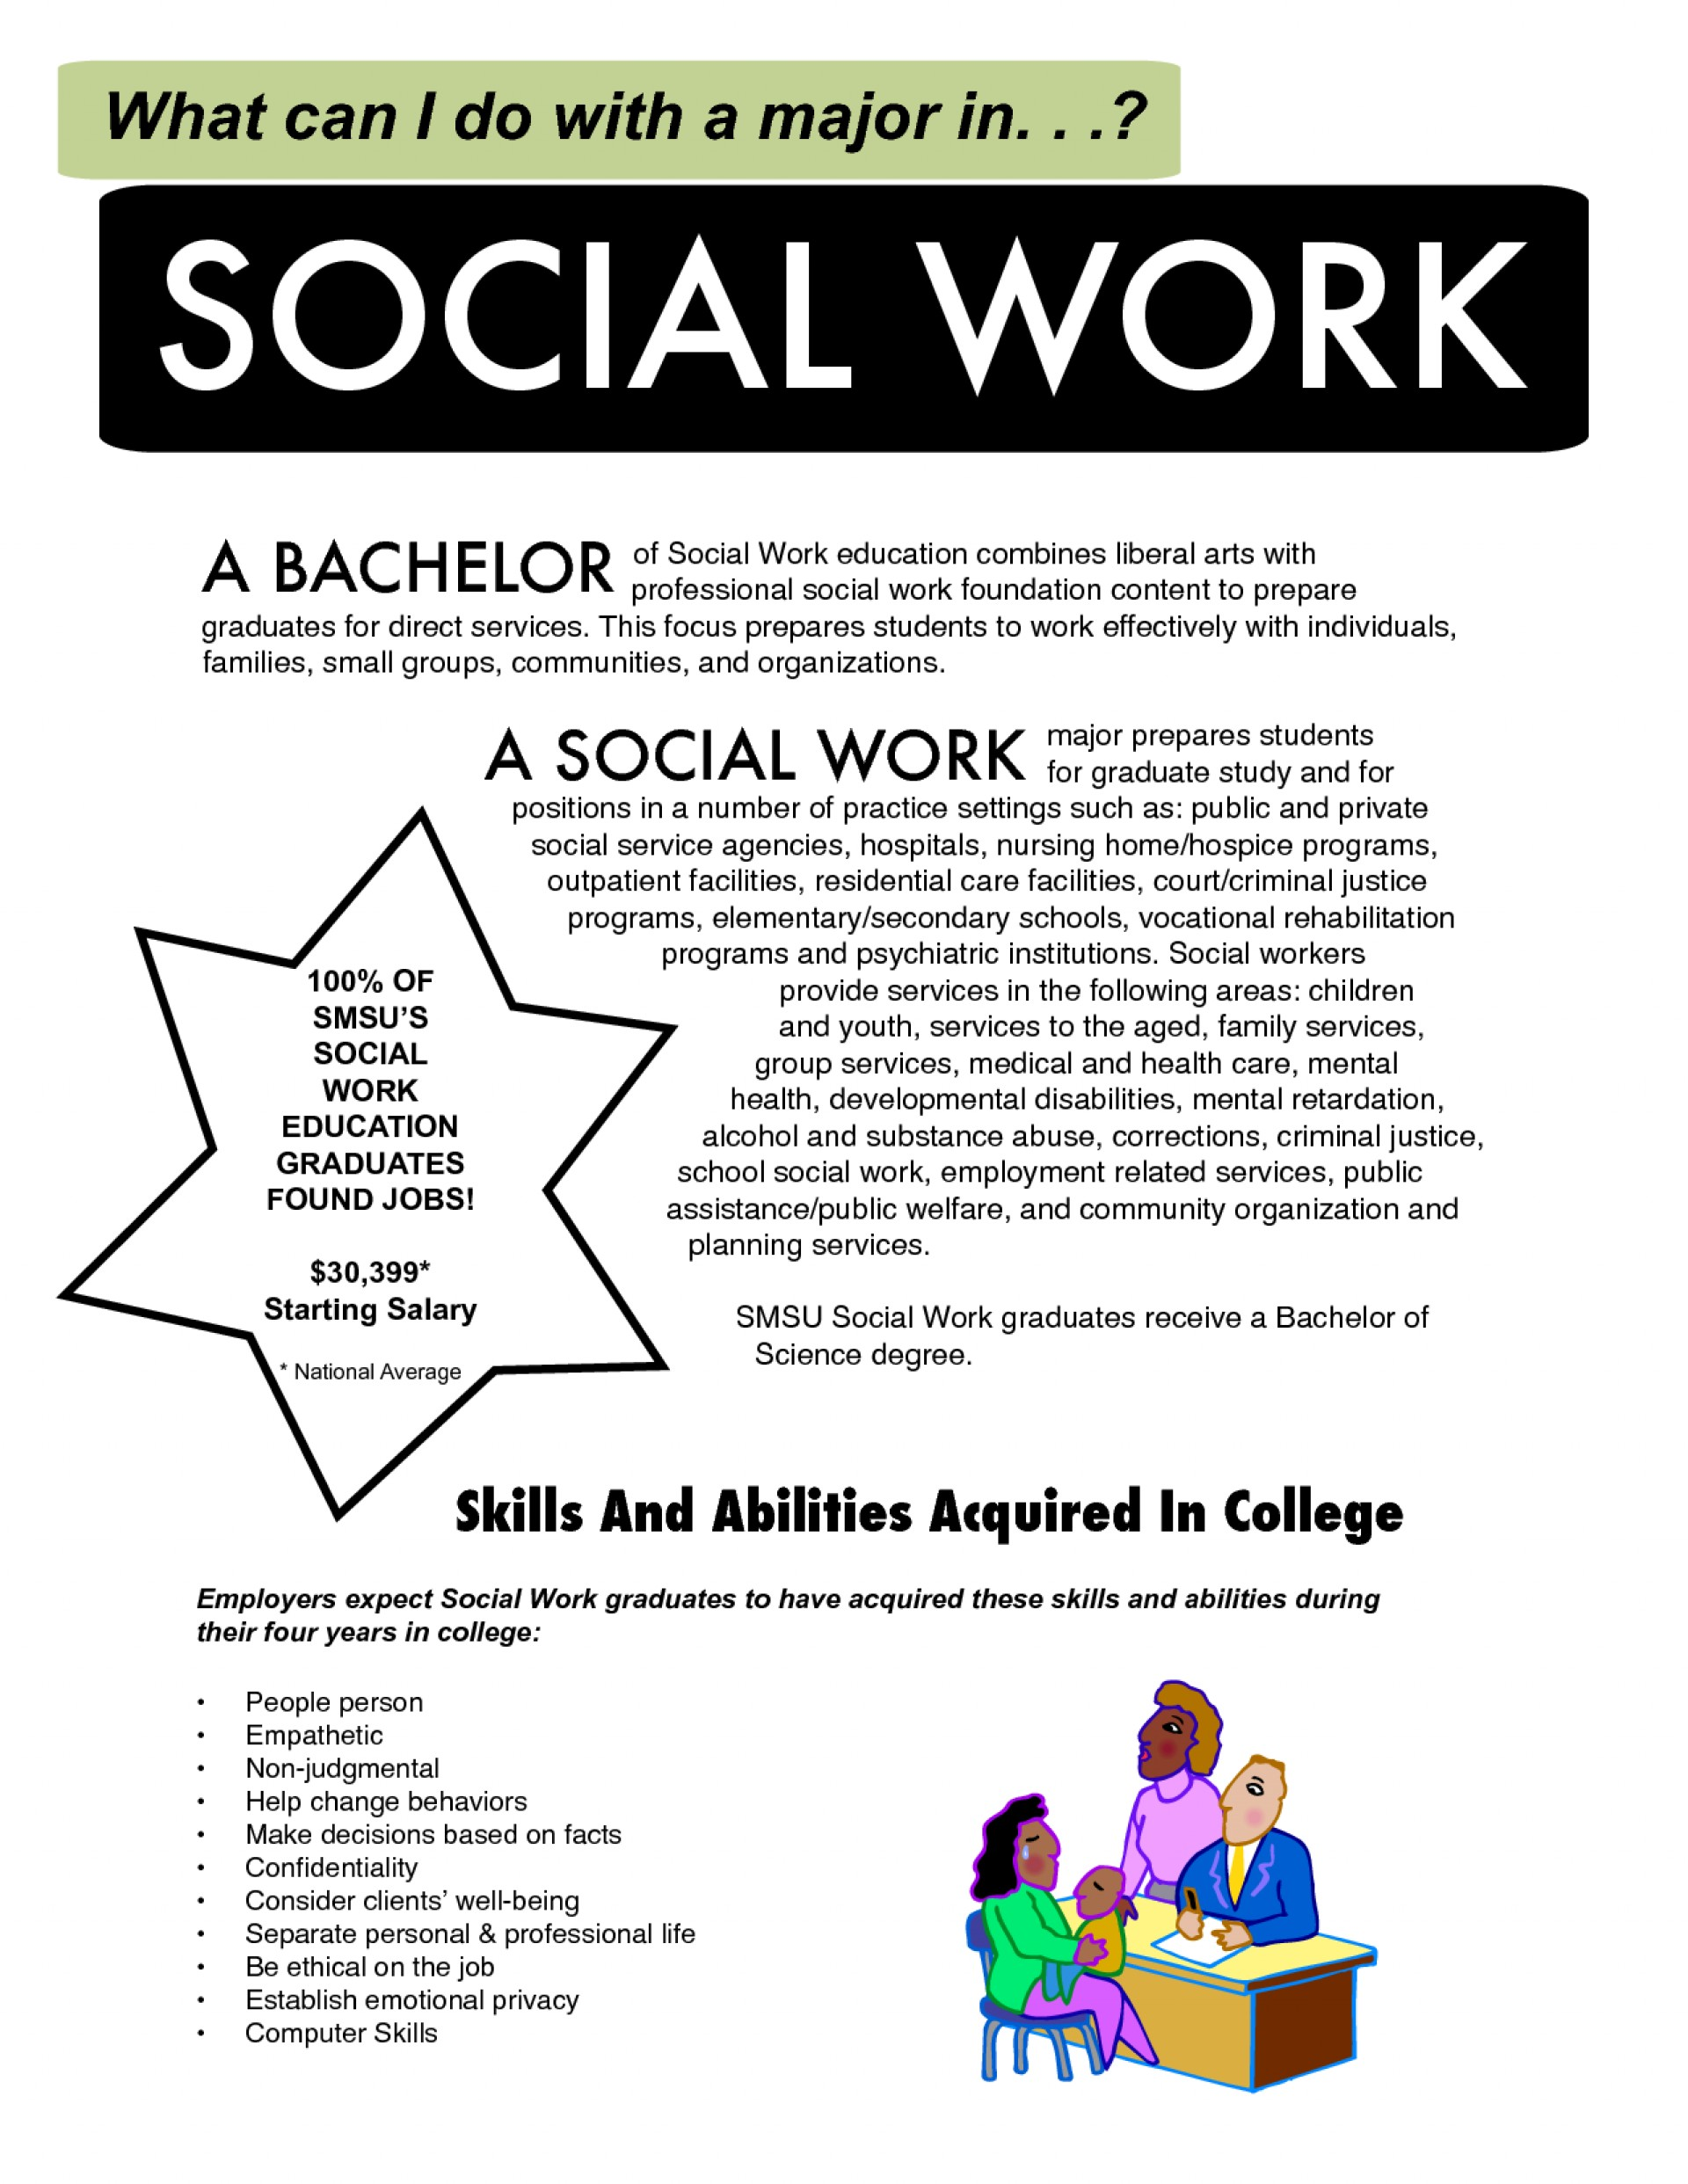 008 Essay Example Why I Want To Social Outstanding Be A Worker Study Work Do Become Became 1920